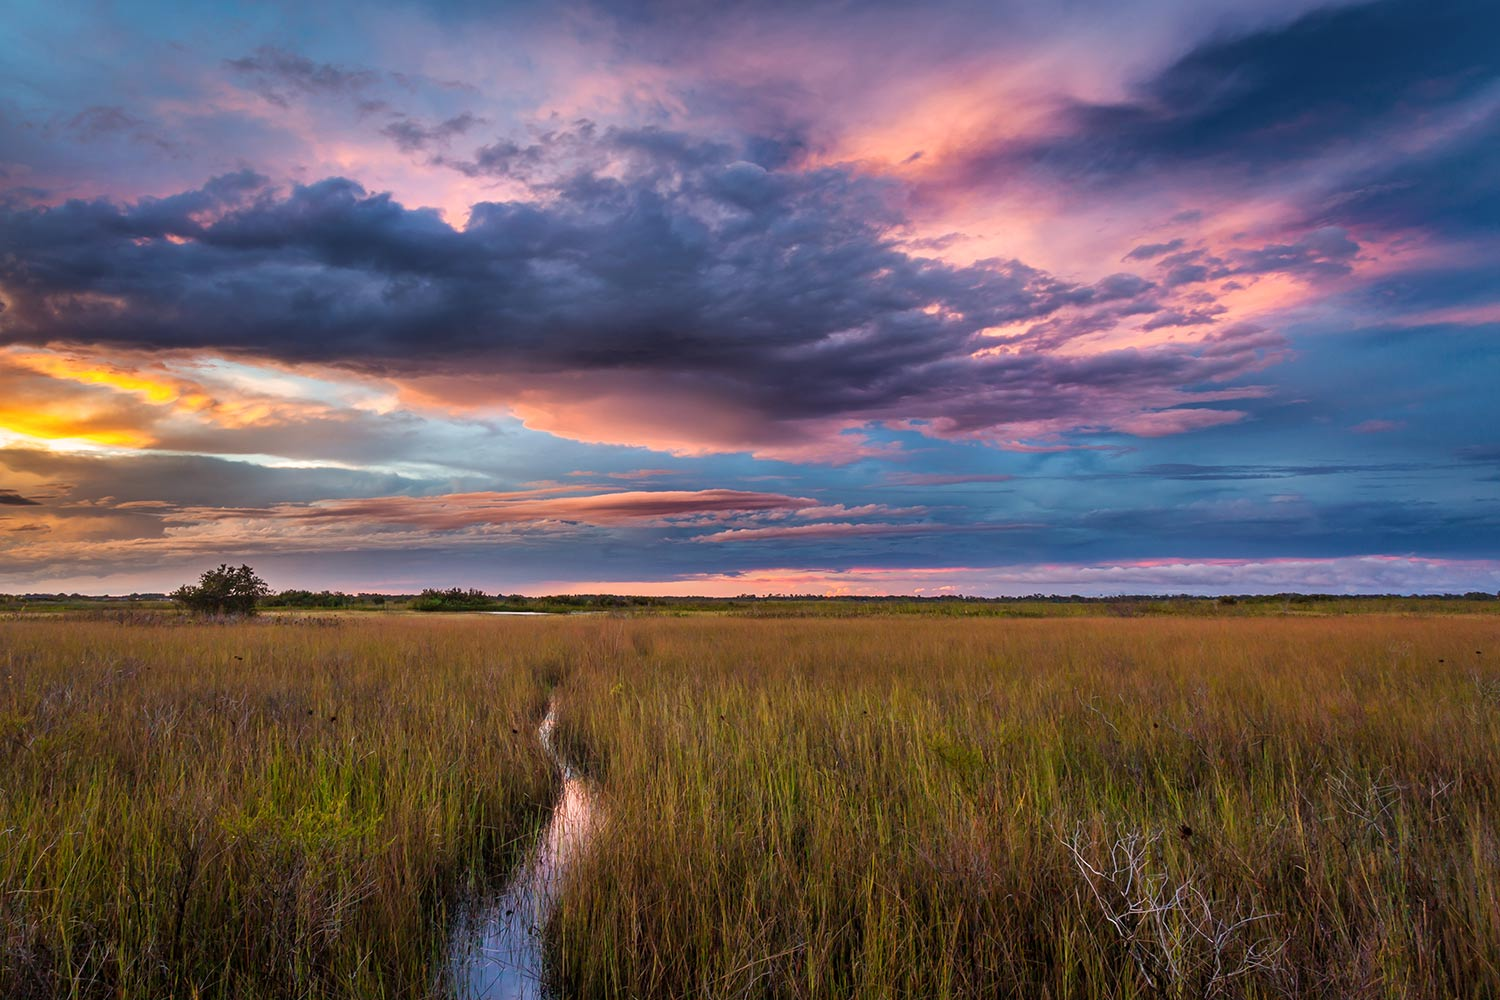 One of the many unique characteristics about central Florida is, there's usually late afternoon thunderstorms which sometimes break apart before or during sunset. This is one of those occasions, over Fells Cove, with my kayak path in the grasses.